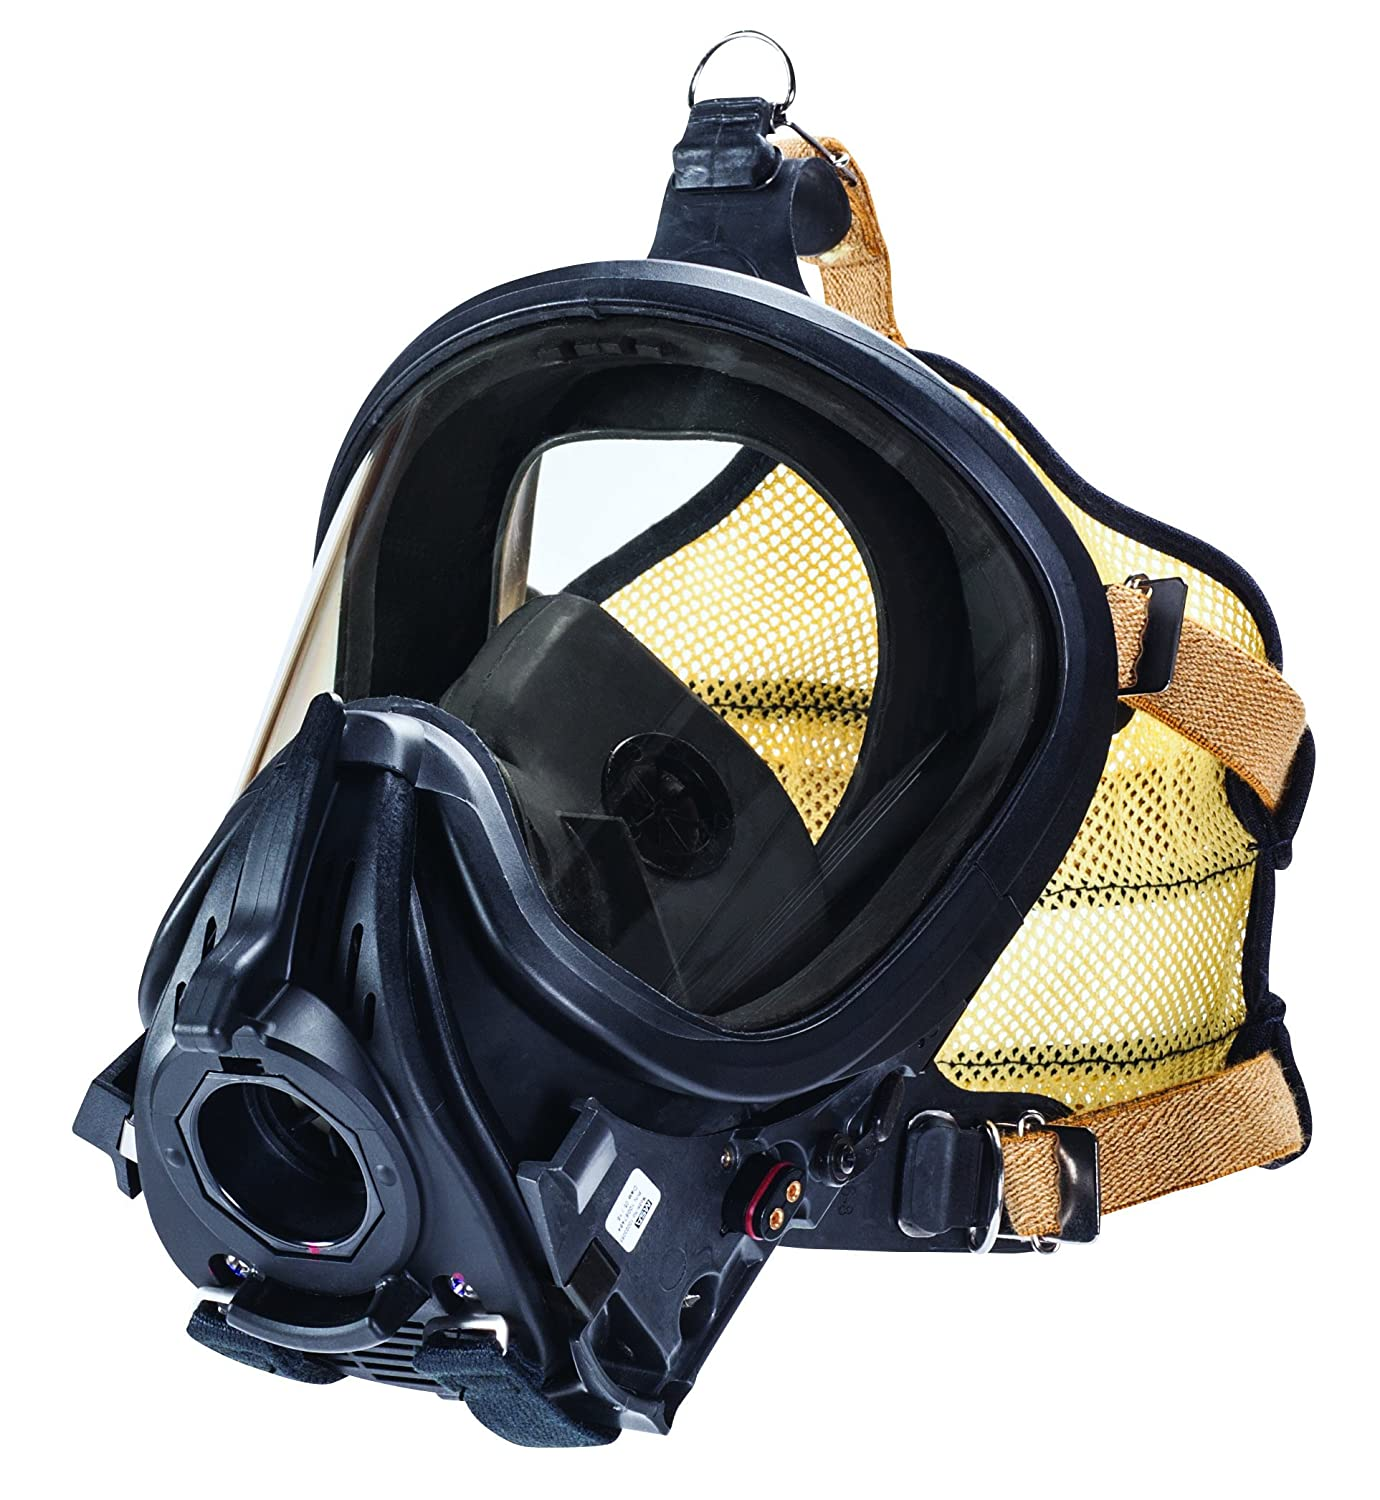 MSA 10149329 Ultra Elite Popular products M7XT Face STC Piece FireHawk for Re Free shipping anywhere in the nation MMR